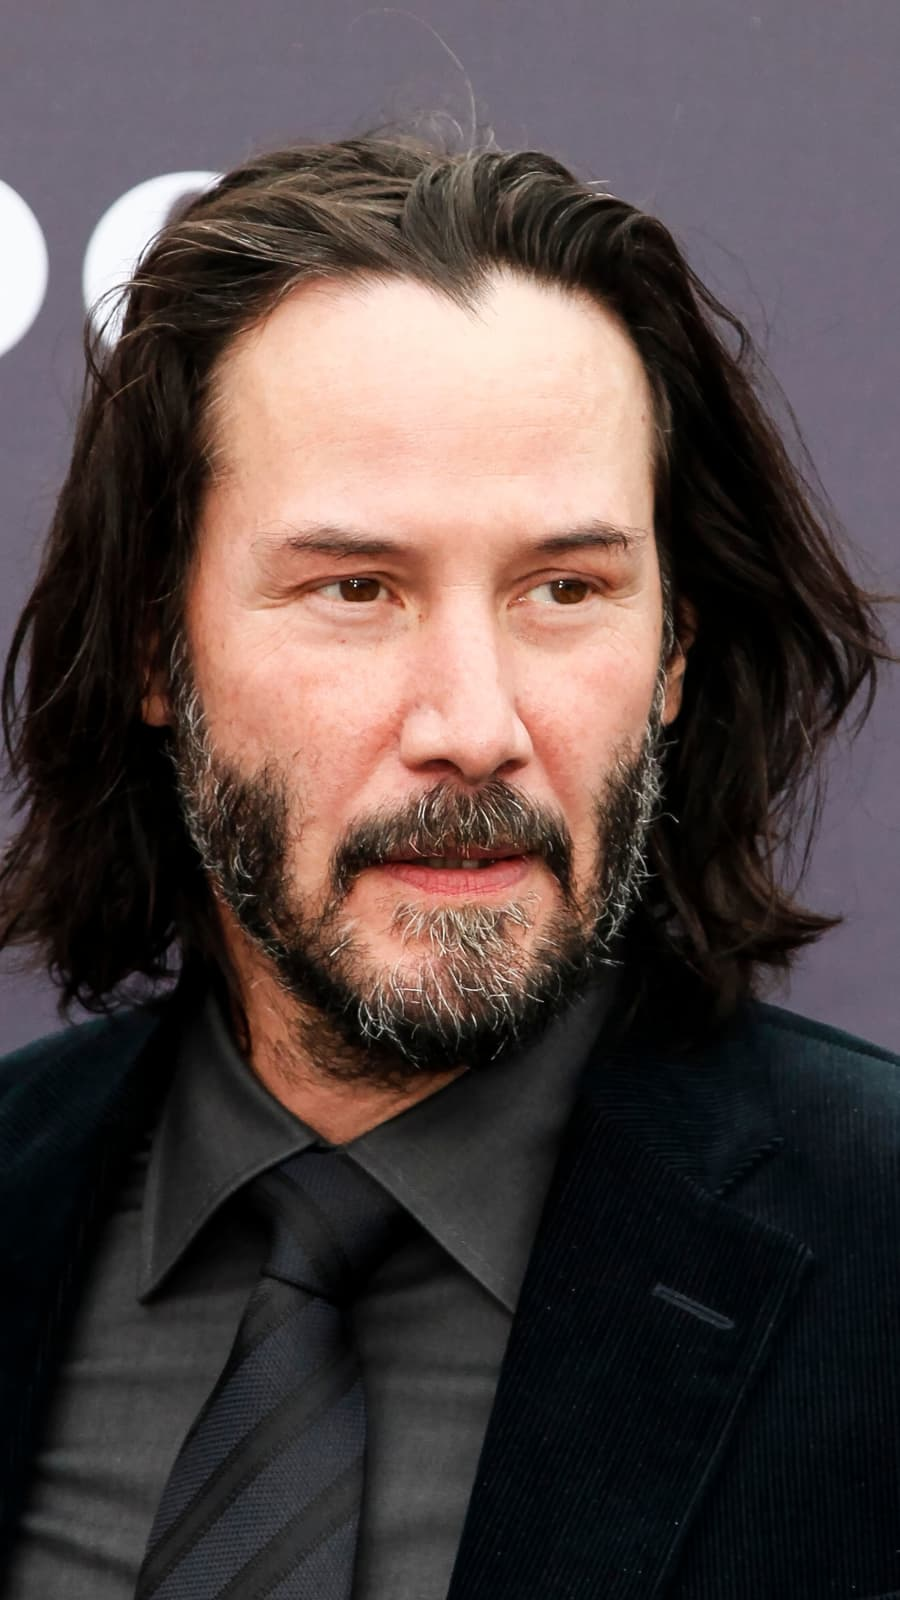 Keanu Reeves These Women Had No Chance With Him